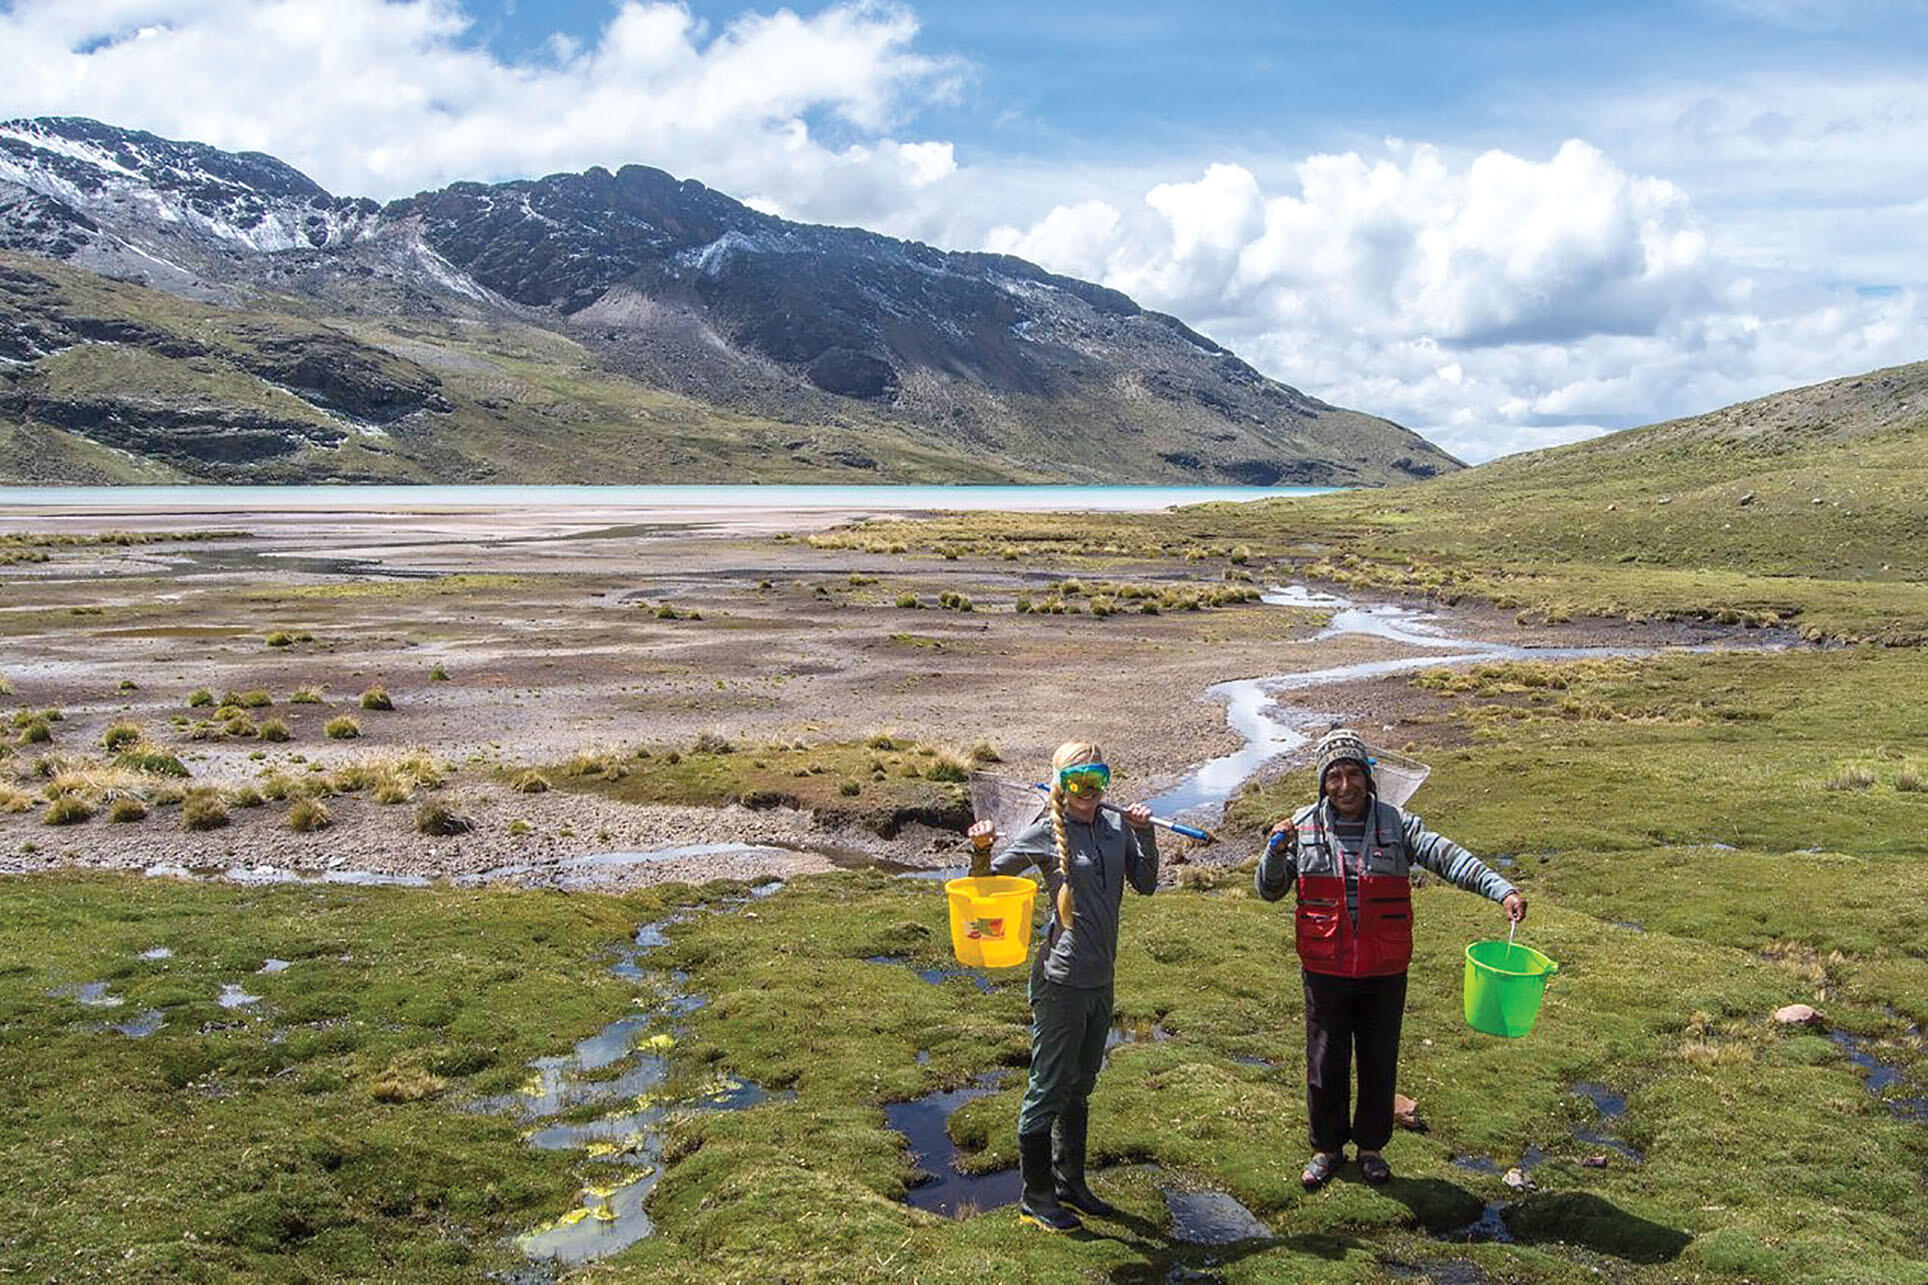 Emma Steigerwald and research assistant Gumercindo collecting samples of frogs high in the Andes, March 2018. (Photo courtesy of Emma Steigerwald.)